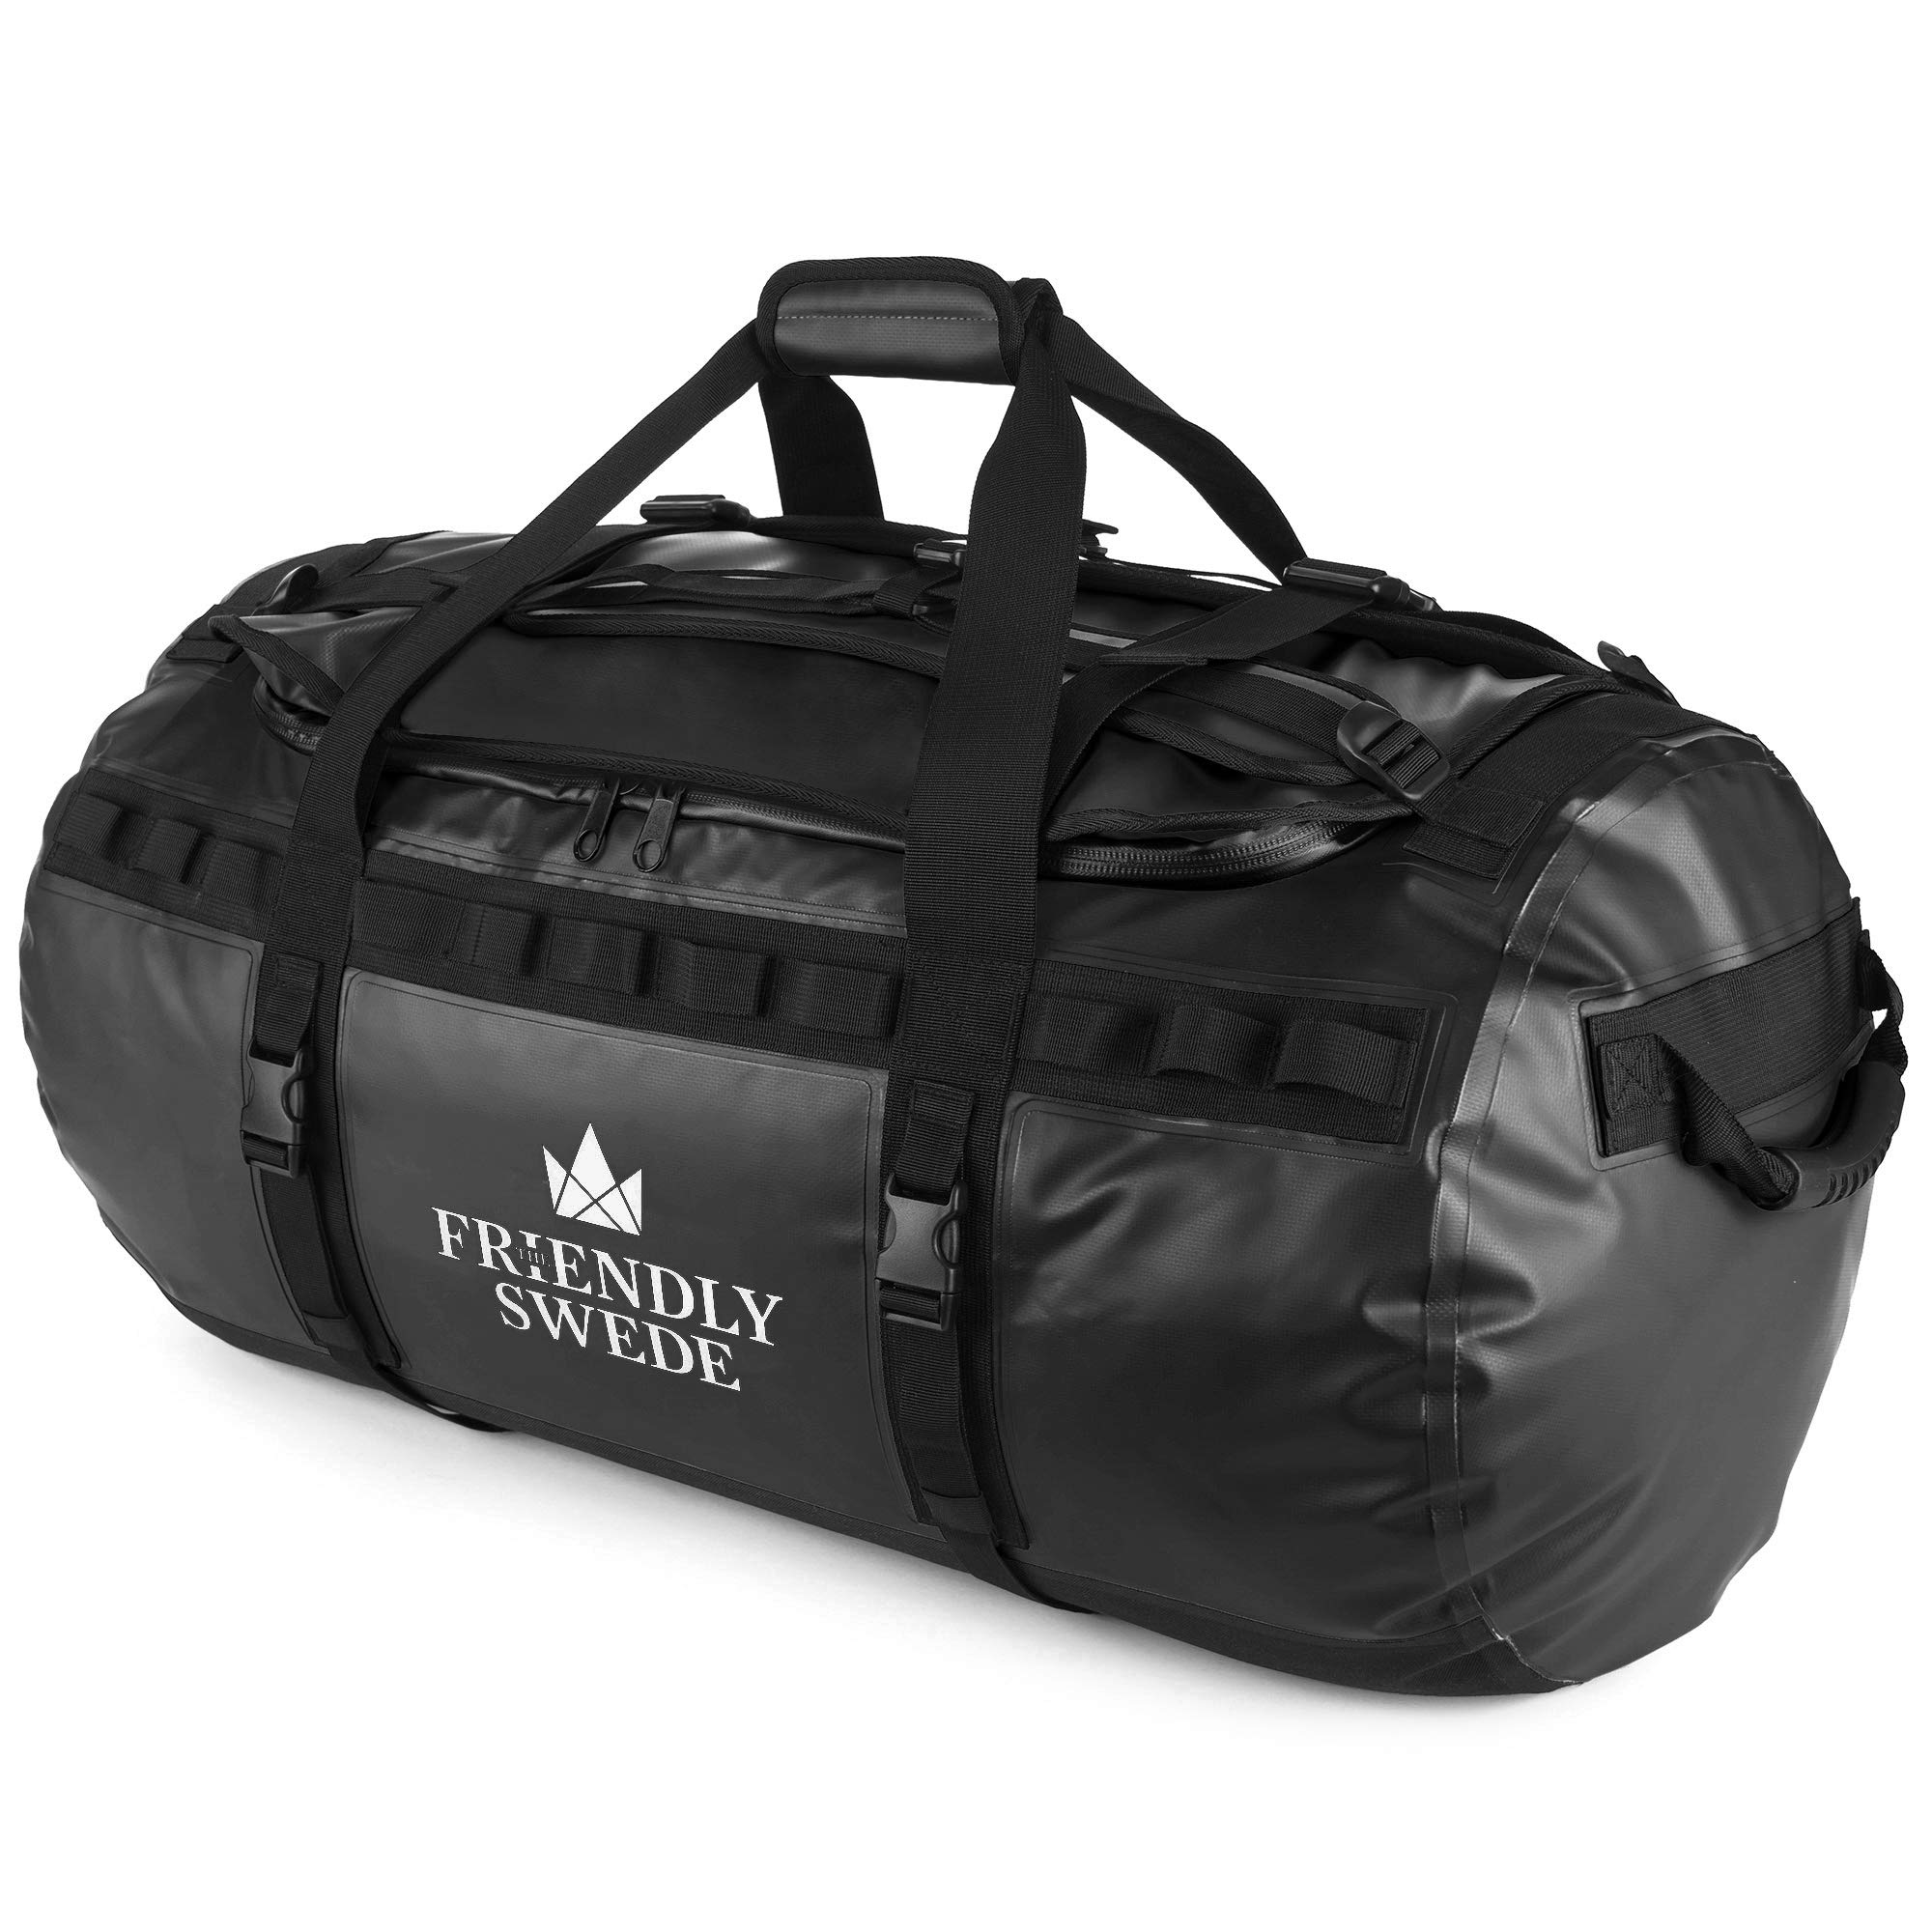 Duffel bag with Backpack Straps for Gym, Travels and Sports - SANDHAMN Duffle - by The Friendly Swede (Black)